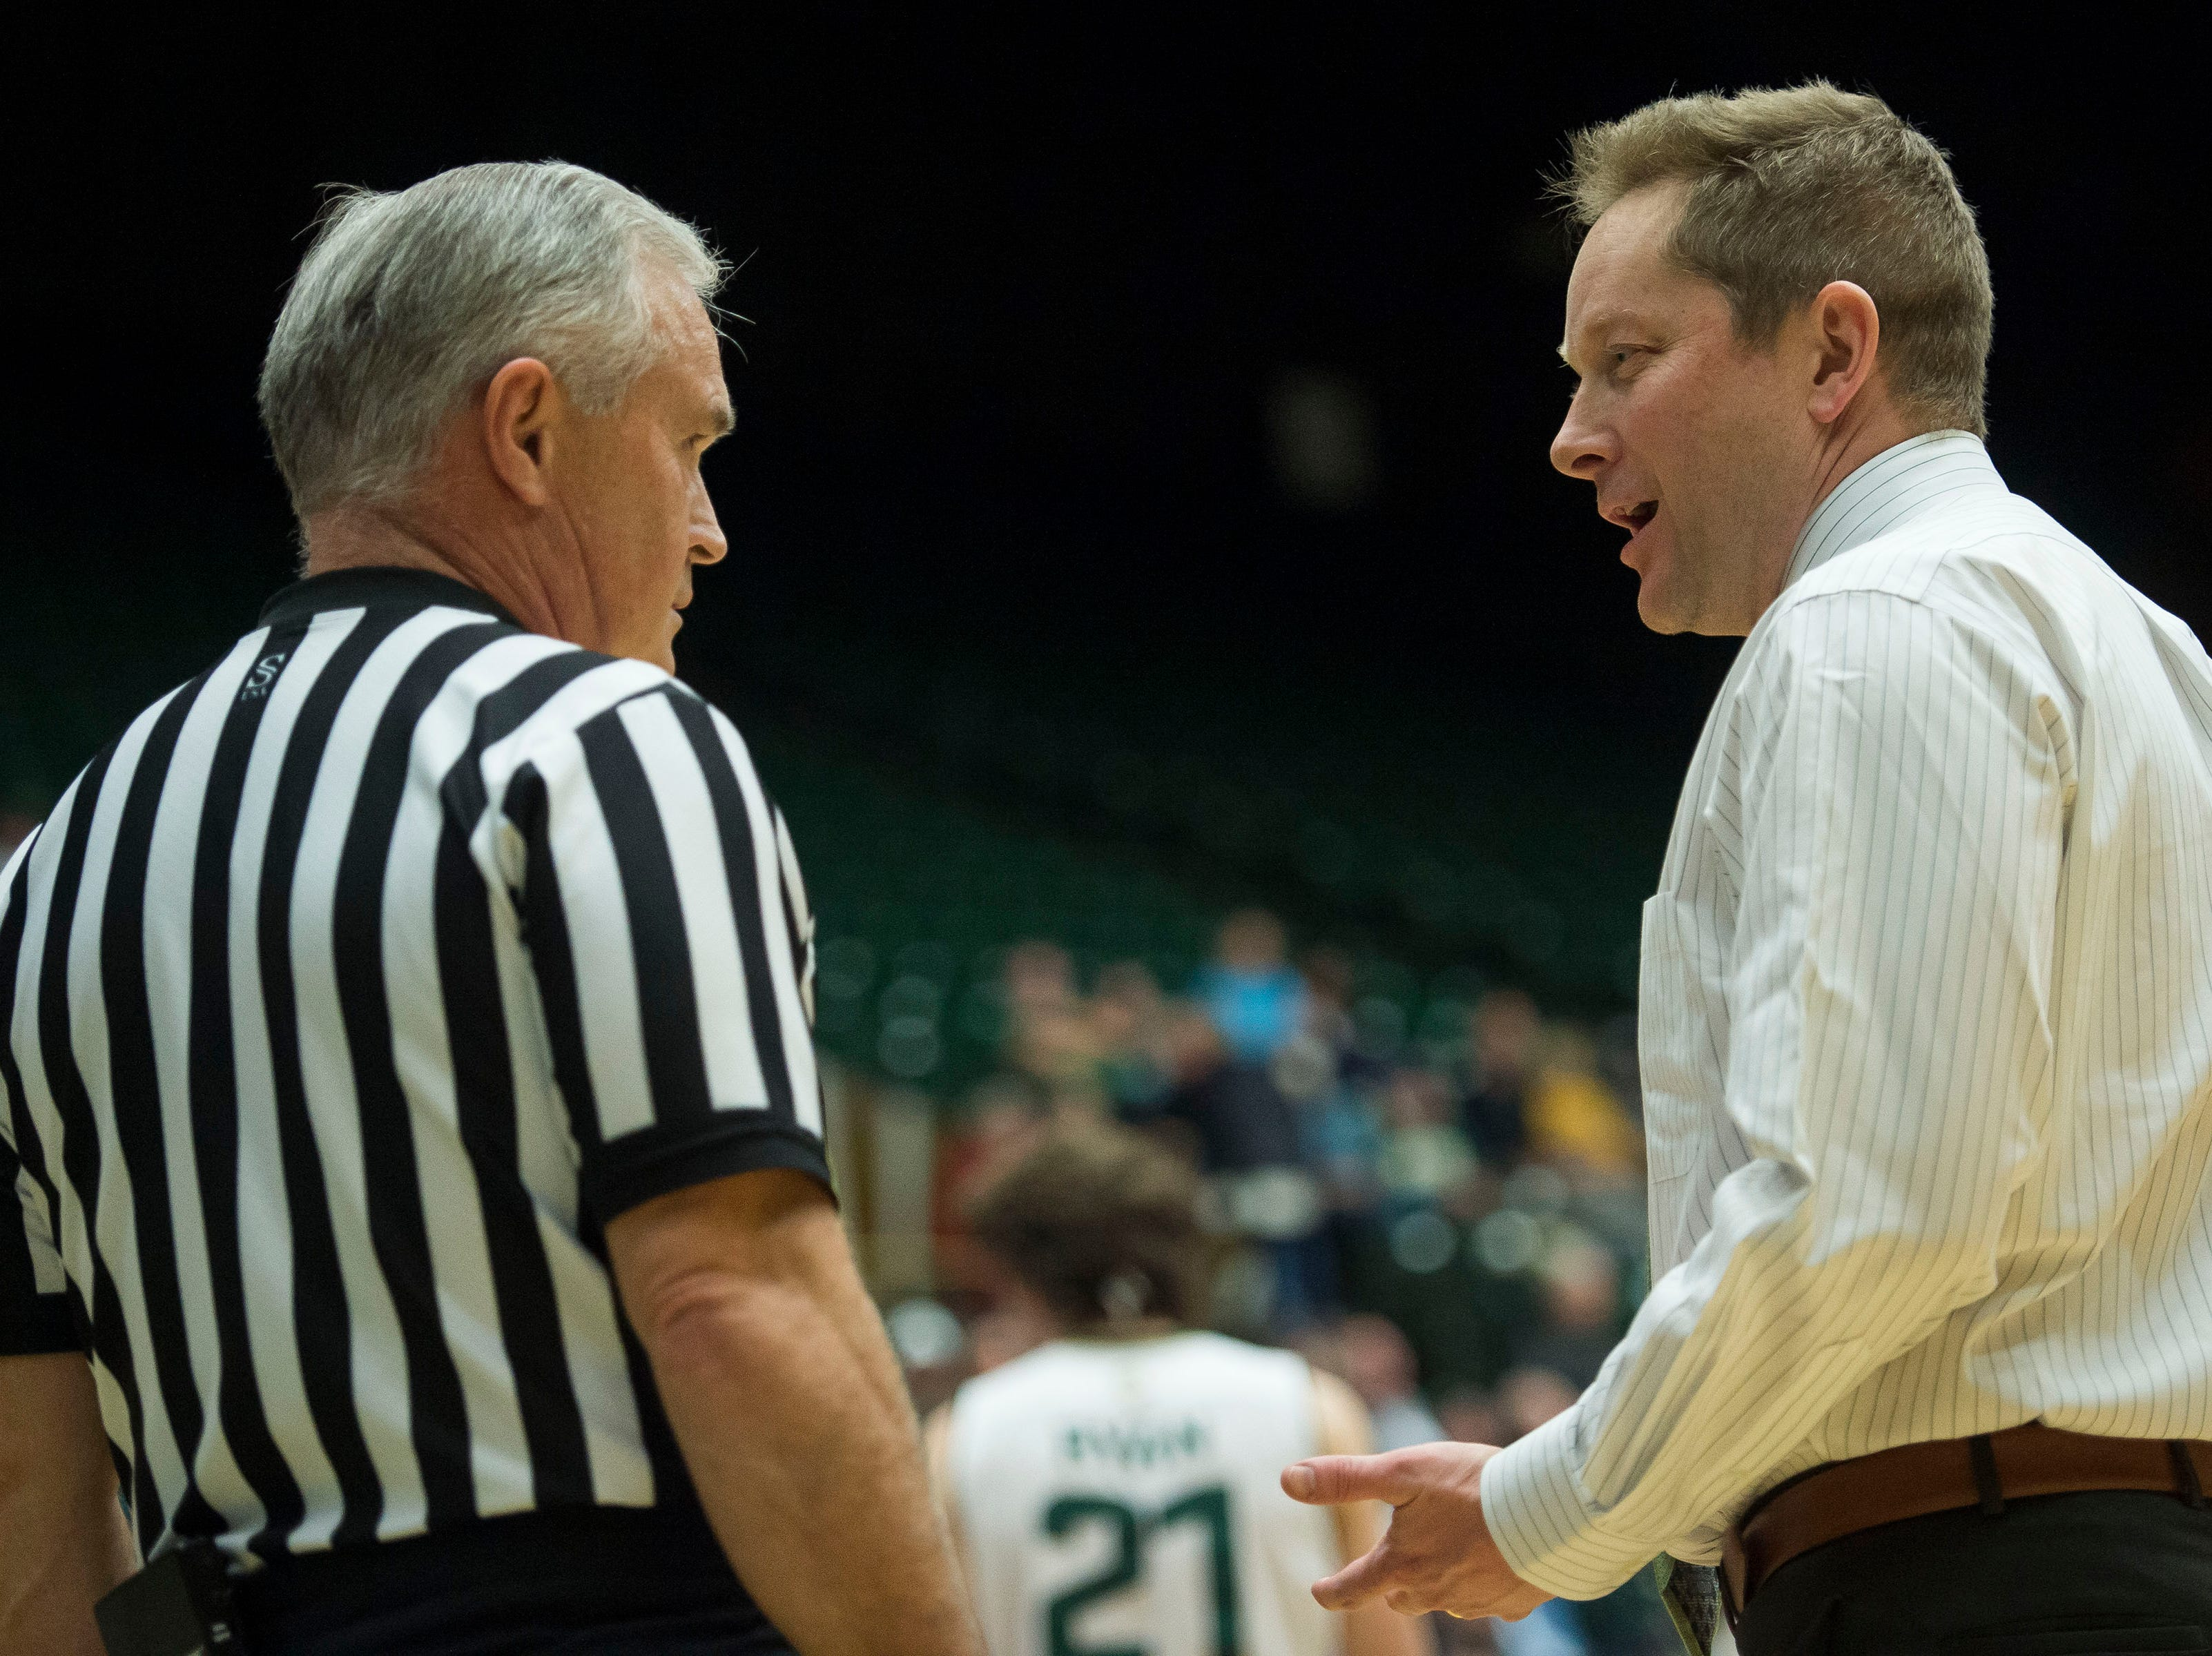 Colorado State University head coach Nico Medved talks with an official during a timeout in a game against the Air Force Academy on Tuesday, Jan. 8, 2019, at Moby Arena in Fort Collins, Colo.